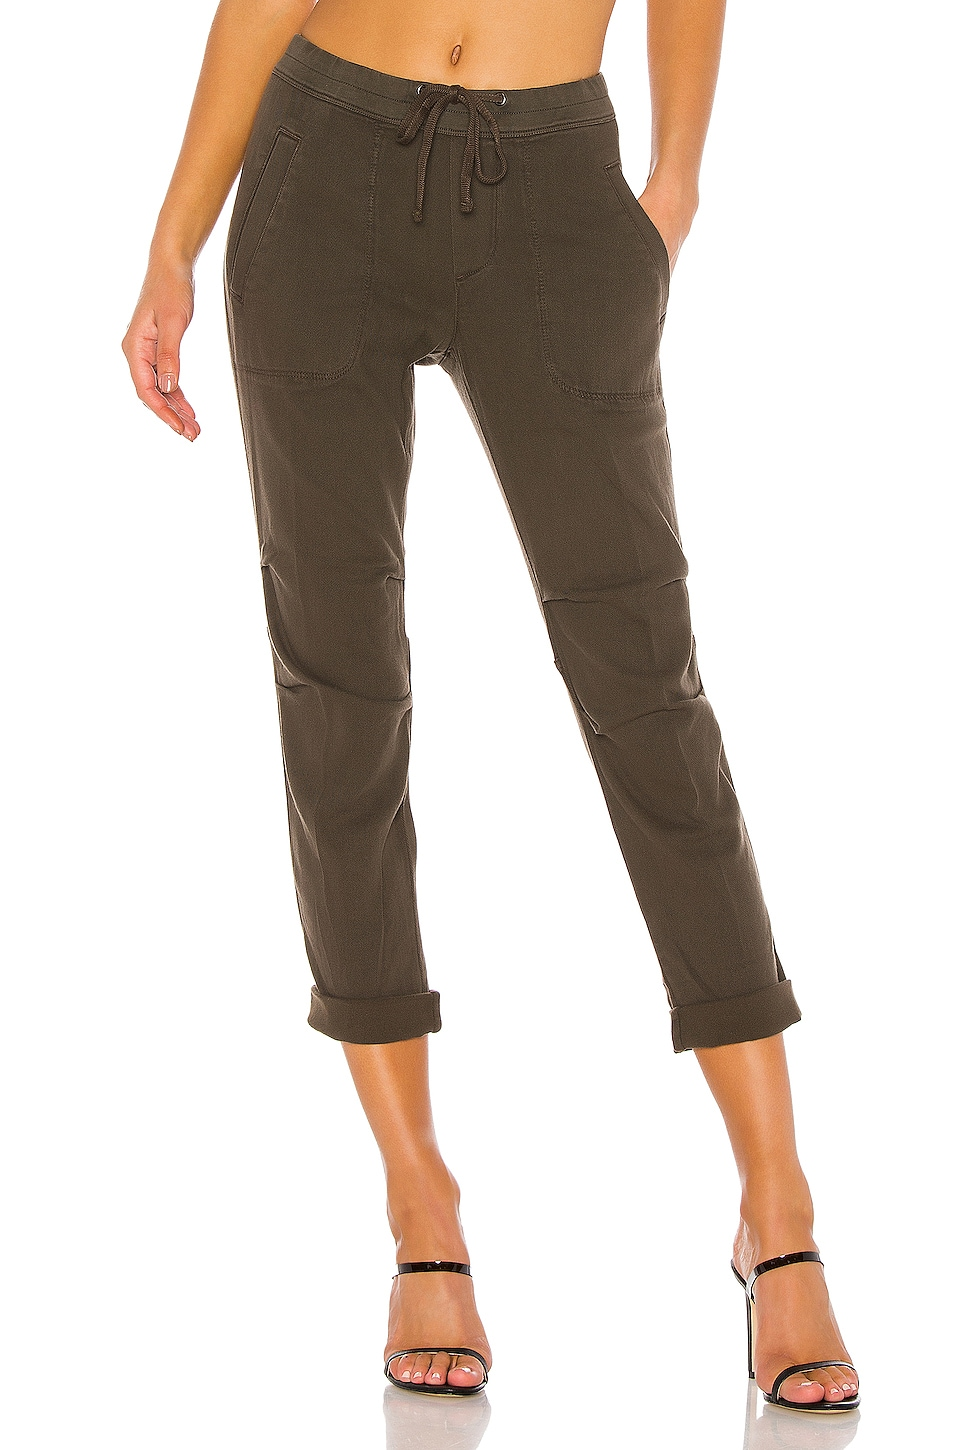 James Perse Super Soft Twill Pant in Smoky Green